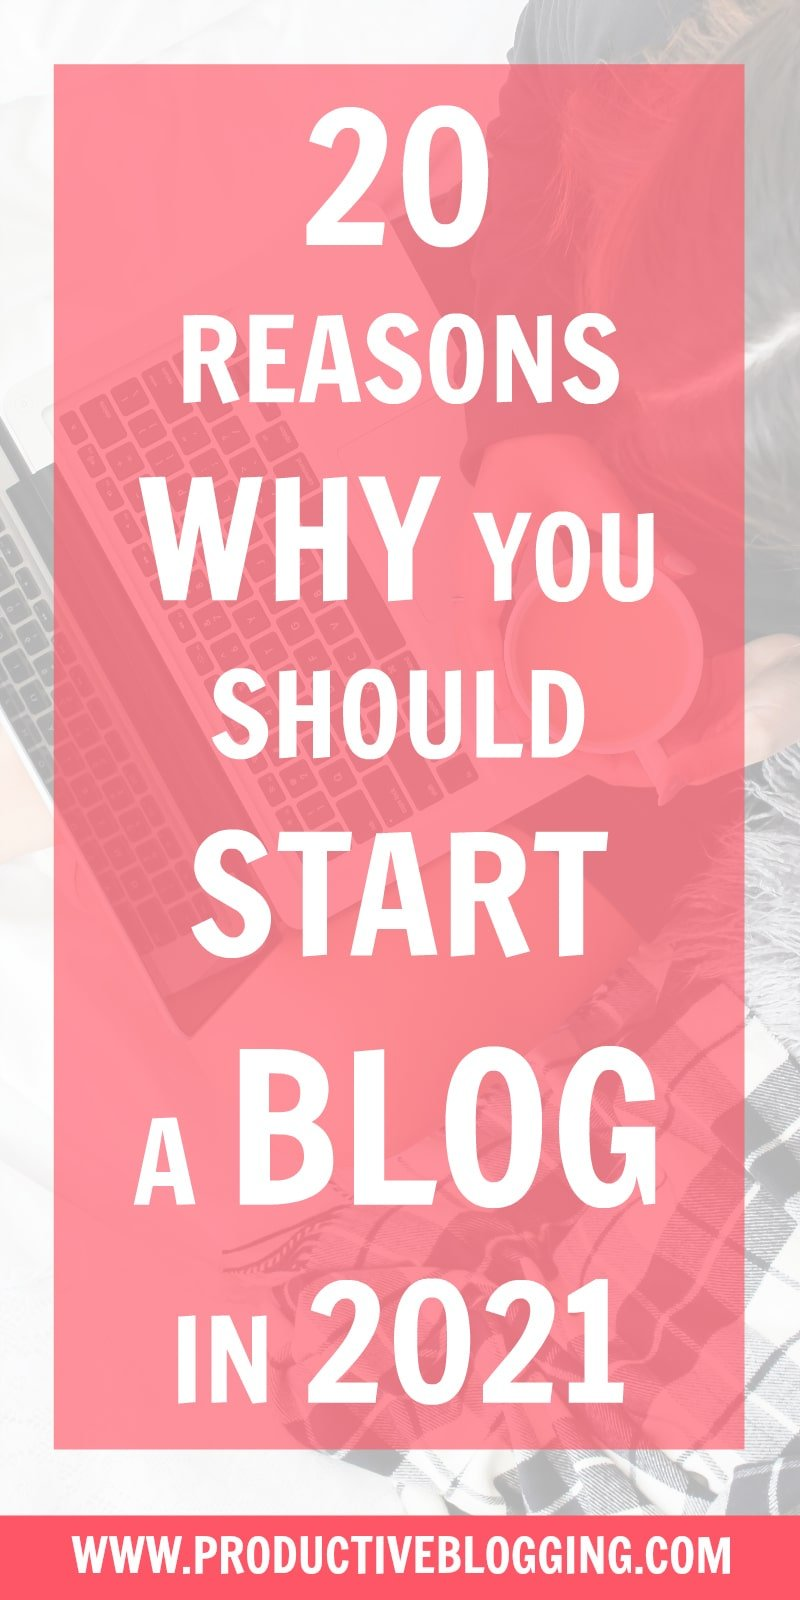 Are you considering starting a blog in 2021? Do you want to earn great money? Be your own boss? Establish your expertise? Open the doors of opportunity? Here are 20 reasons why you should start a blog in 2021… #startablog #startablog2021 #startablogin2021 #reasonstoblog #reasonstostartablog #bloggers #blogger #blogging #blog #newblogger #newbloggers #wannabeblogger #wannabebloggers #benefitsofblogging #bloggingisnotdead #whyblog #whystartablog #whystartablogin2021 #productiveblogging